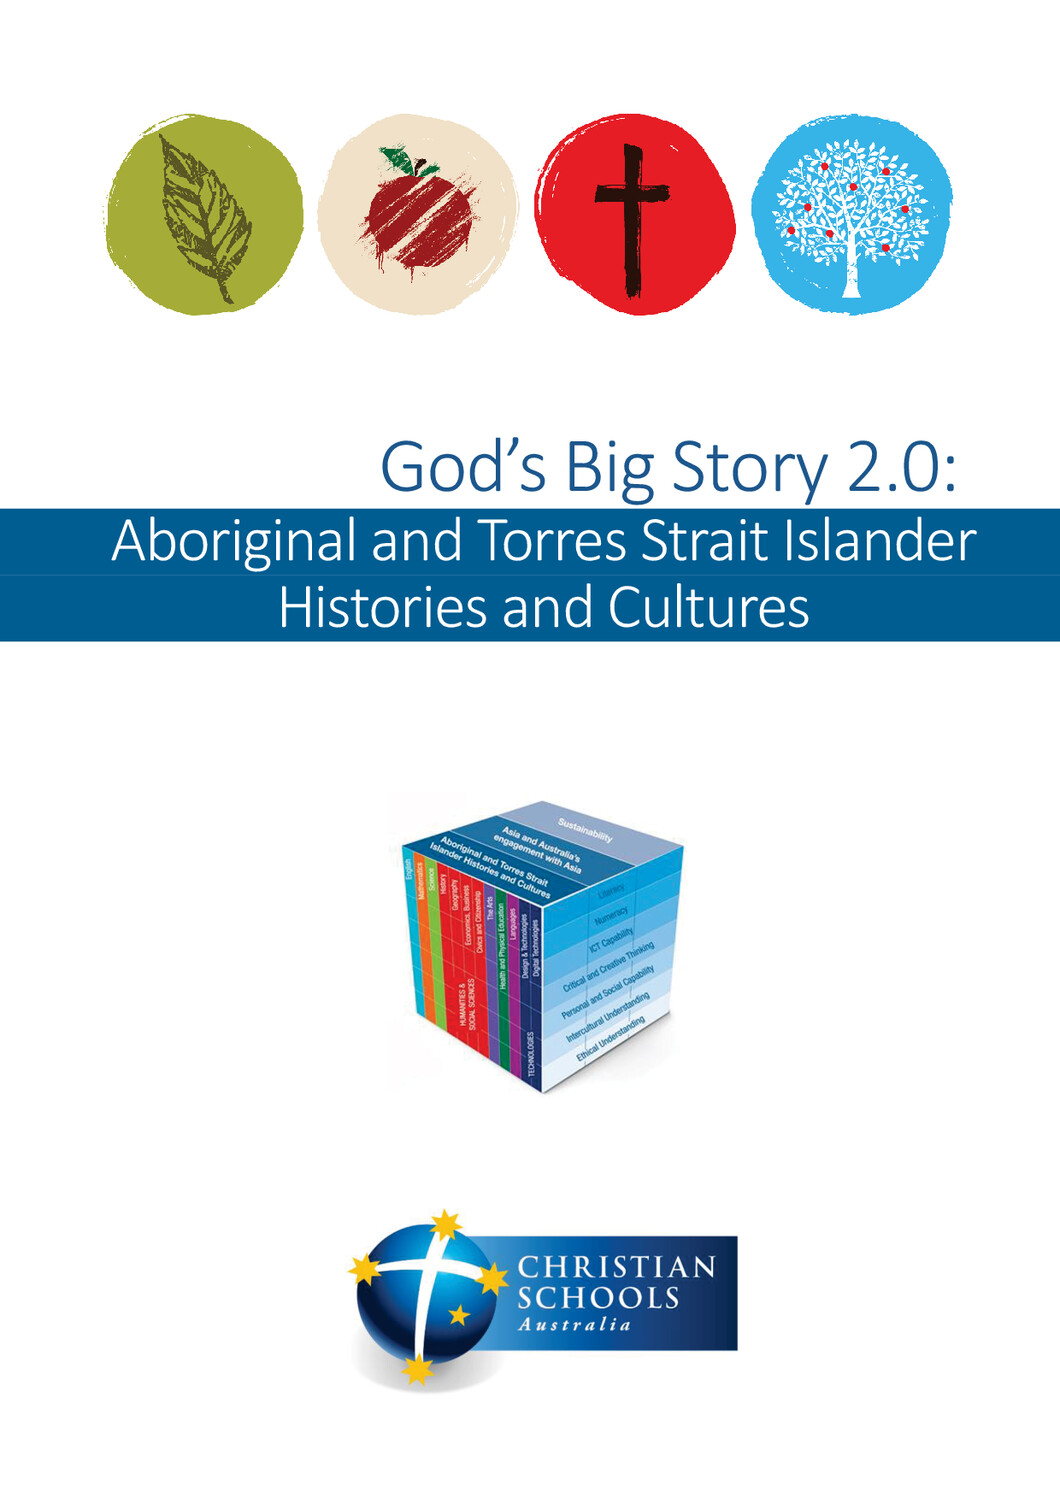 God's Big Story 2.0: Aboriginal and Torres Strait Islander Histories and Cultures